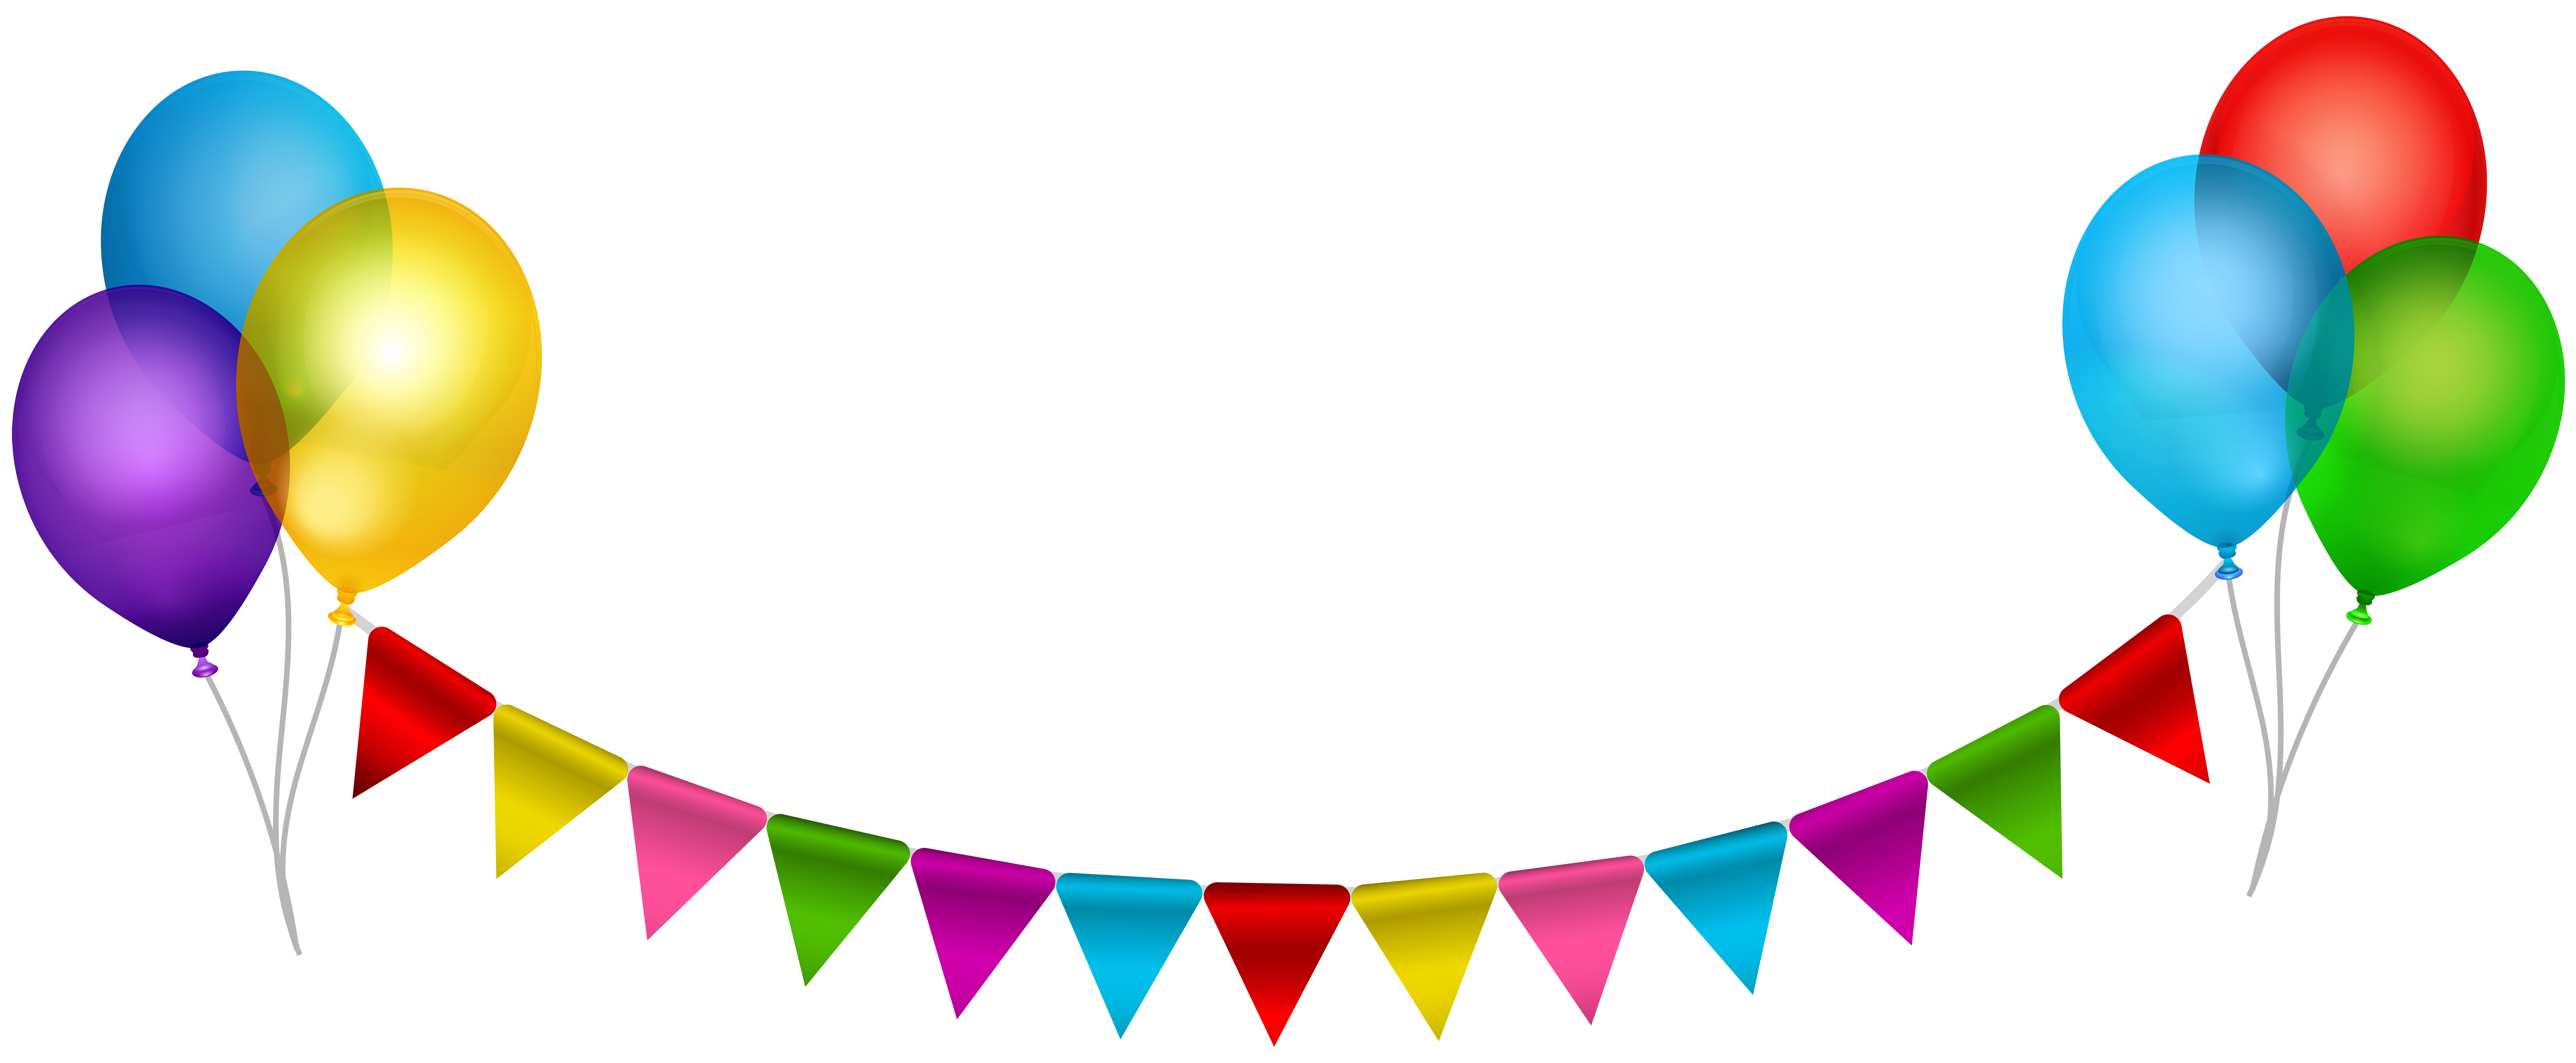 Party Streamer with Balloons Transparent Clip Art.